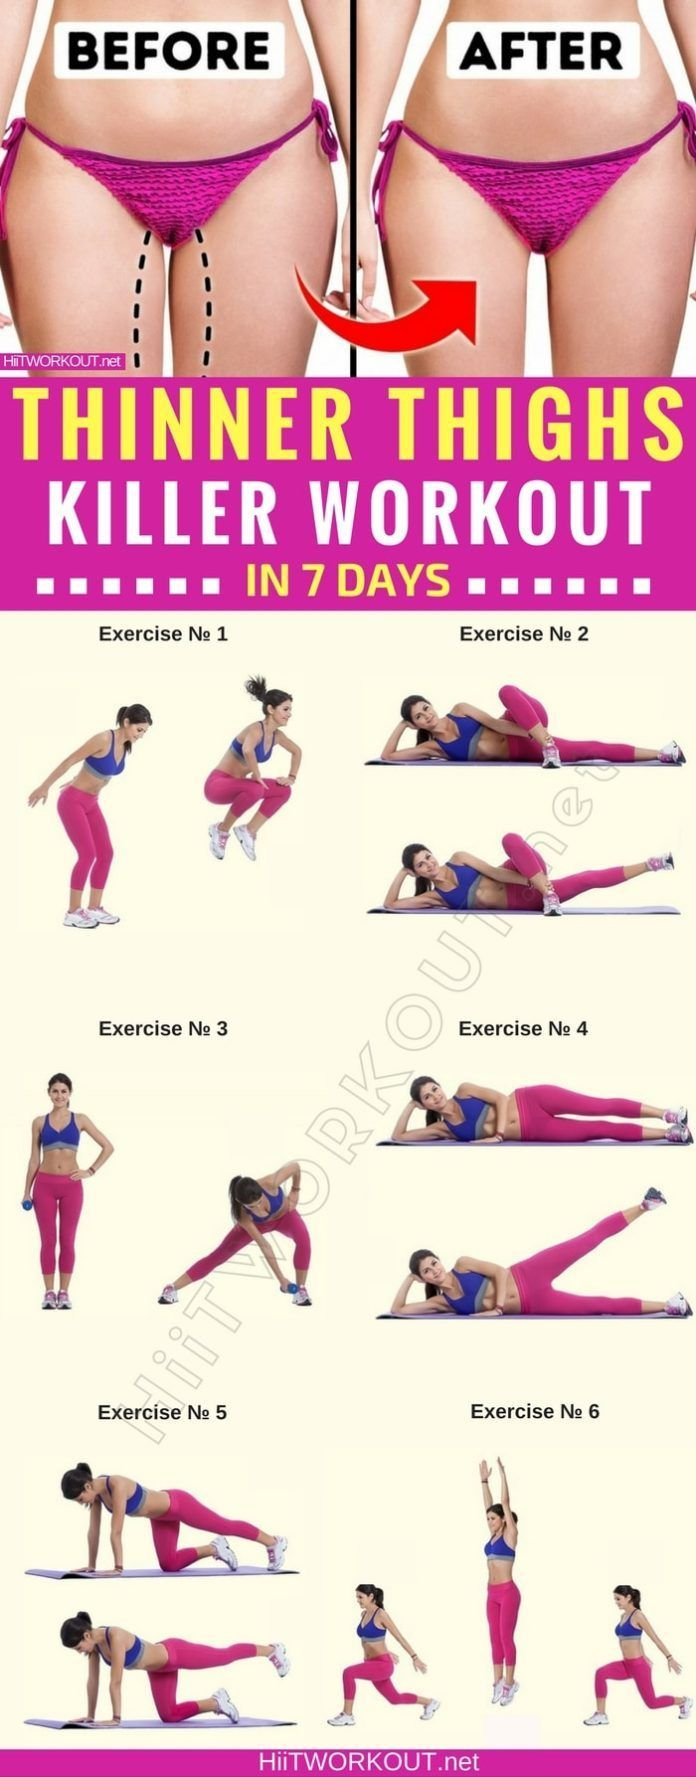 Fitness, Workout, Thigh exercises, Leg workout, Health fitness, Abs workout - How to get thinner thi...